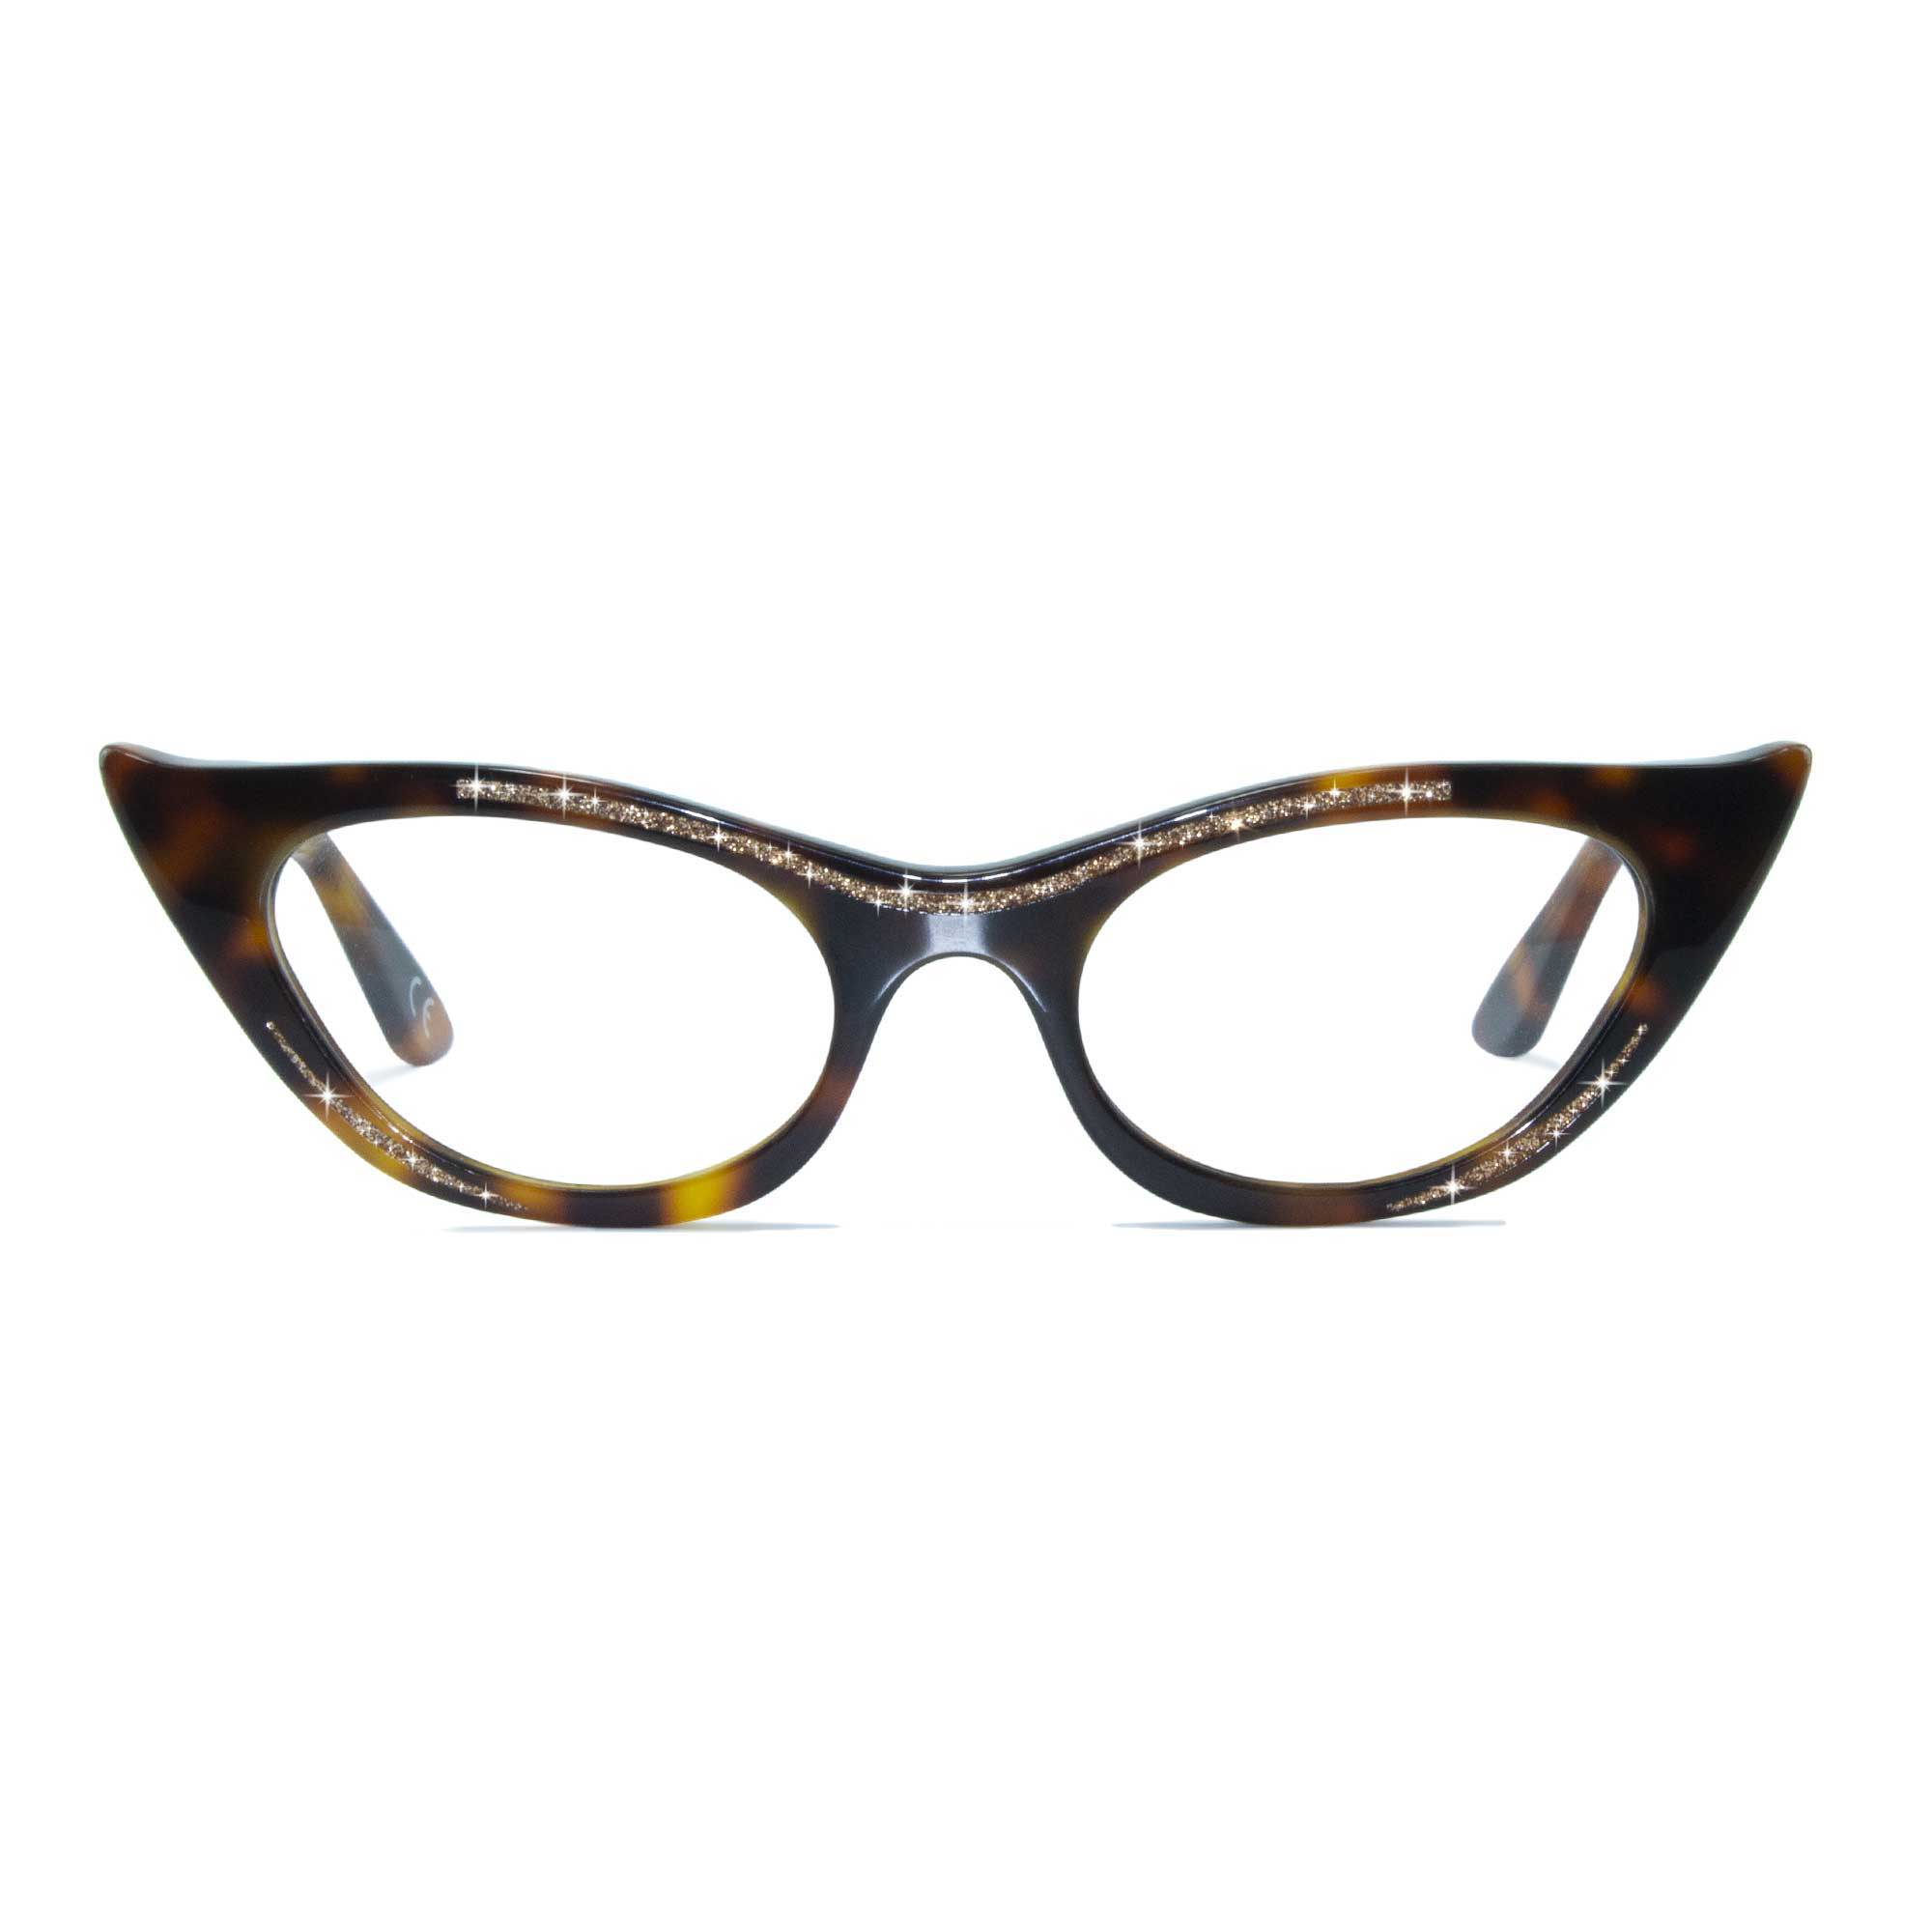 Joiuss lana tortoiseshell cat eye glasses